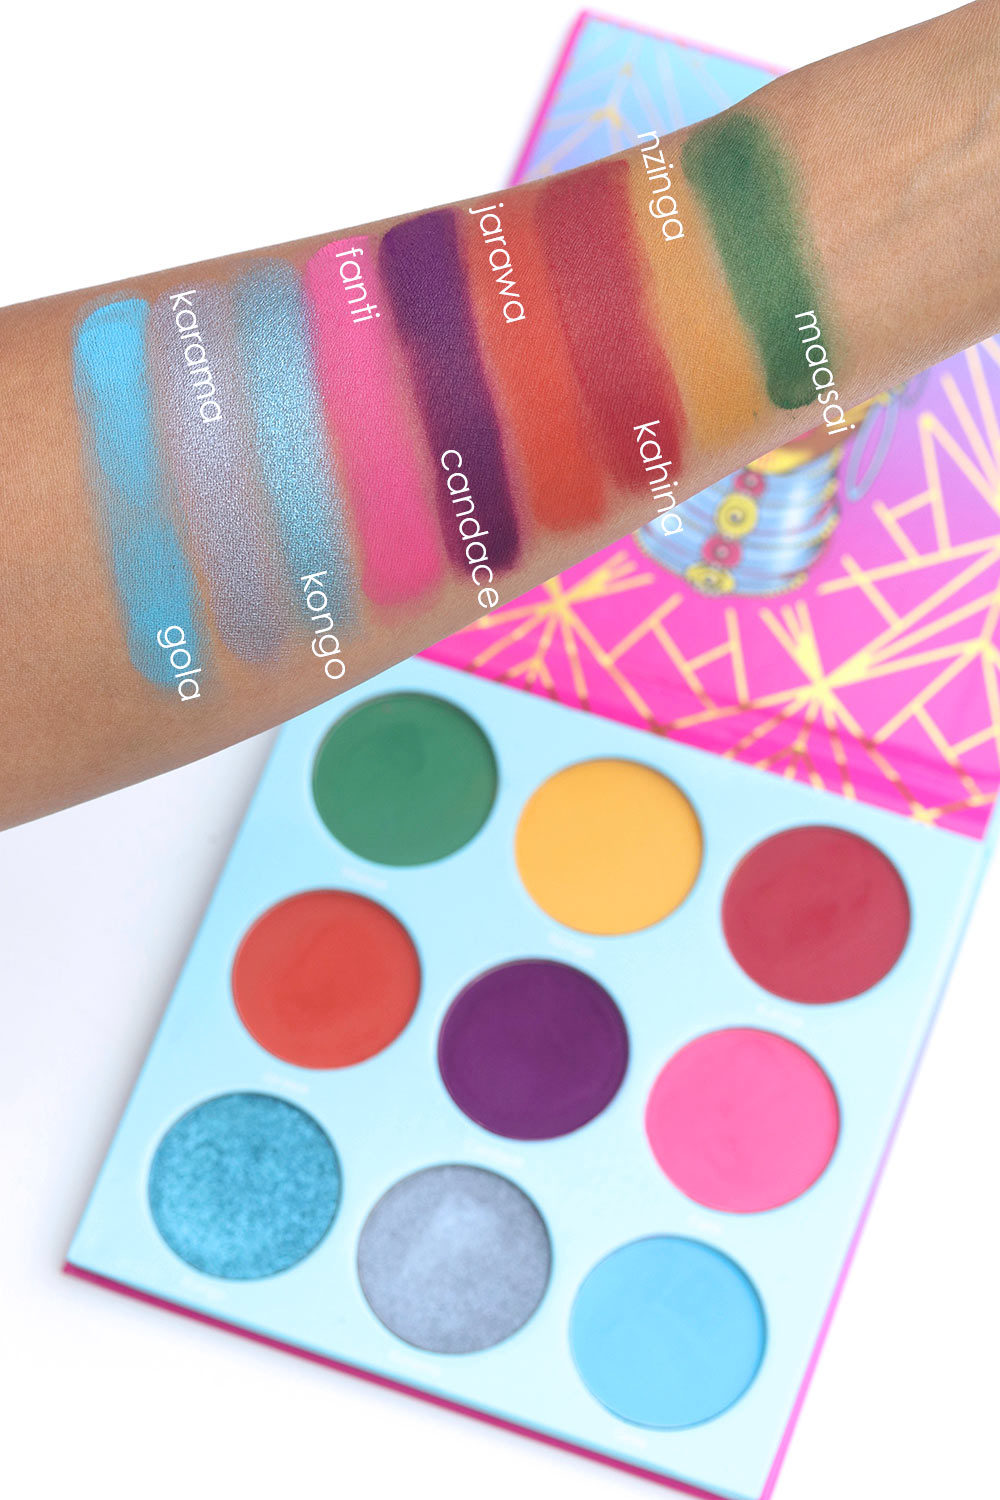 Juvia's place warrior 3 swatches